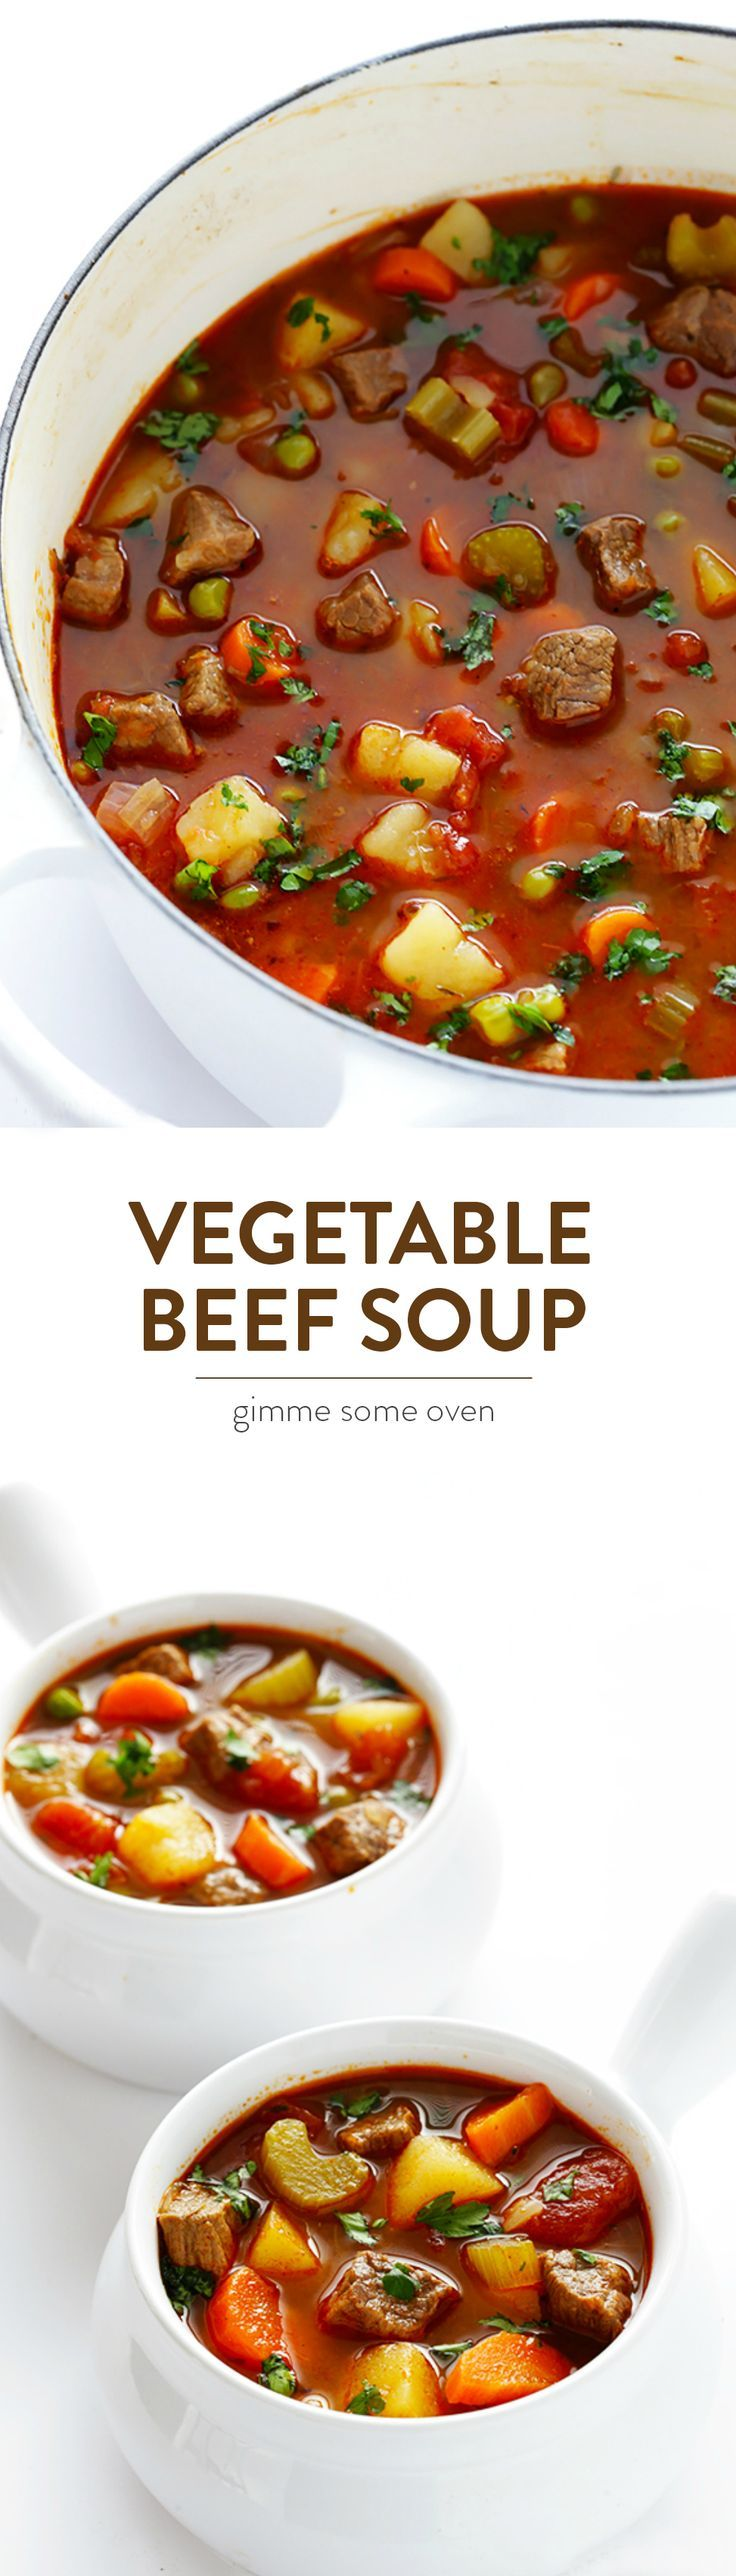 My all-time favorite recipe for homemade Vegetable Beef Soup.  It's easy to make, and so hearty and comforting | http://gimmesomeoven.com